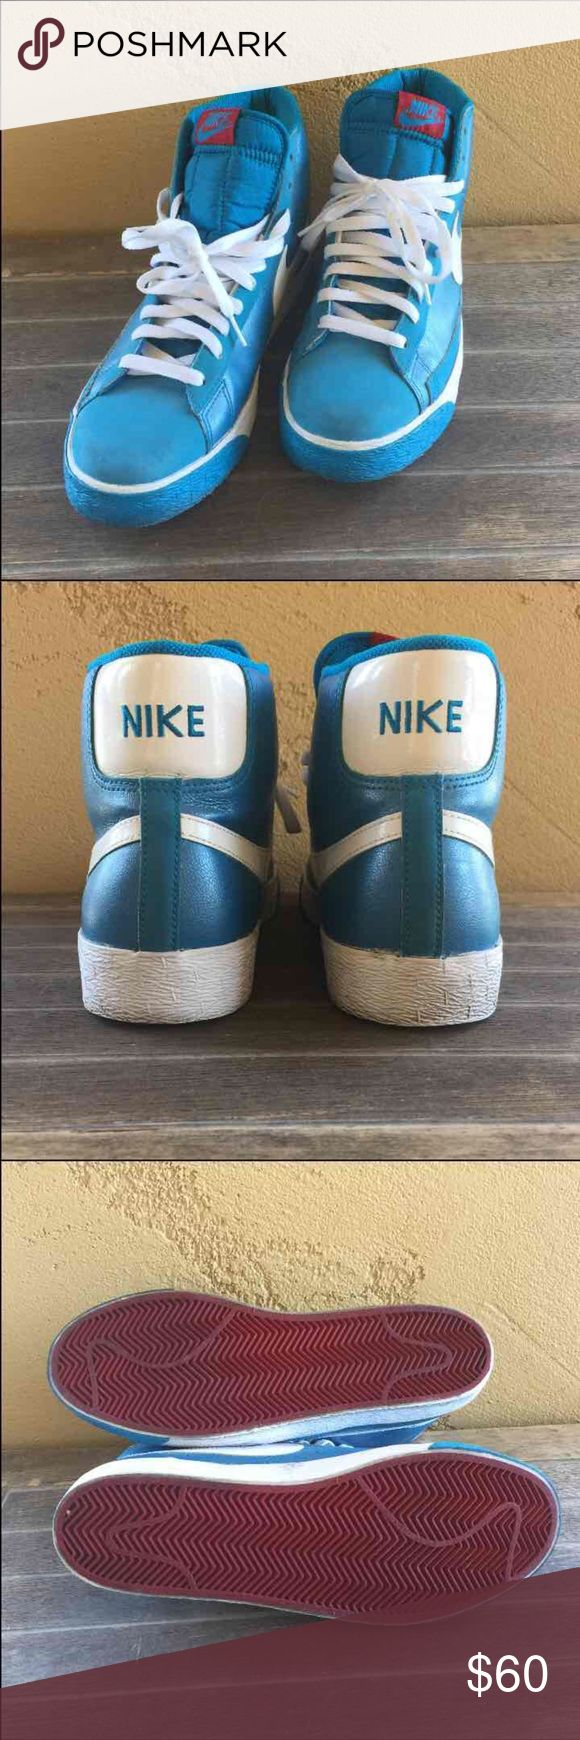 Nike Blazer High Top Sneakers Gently used Nike Blazer SP Retro DS #379416-401 Nike Shoes Athletic Shoes